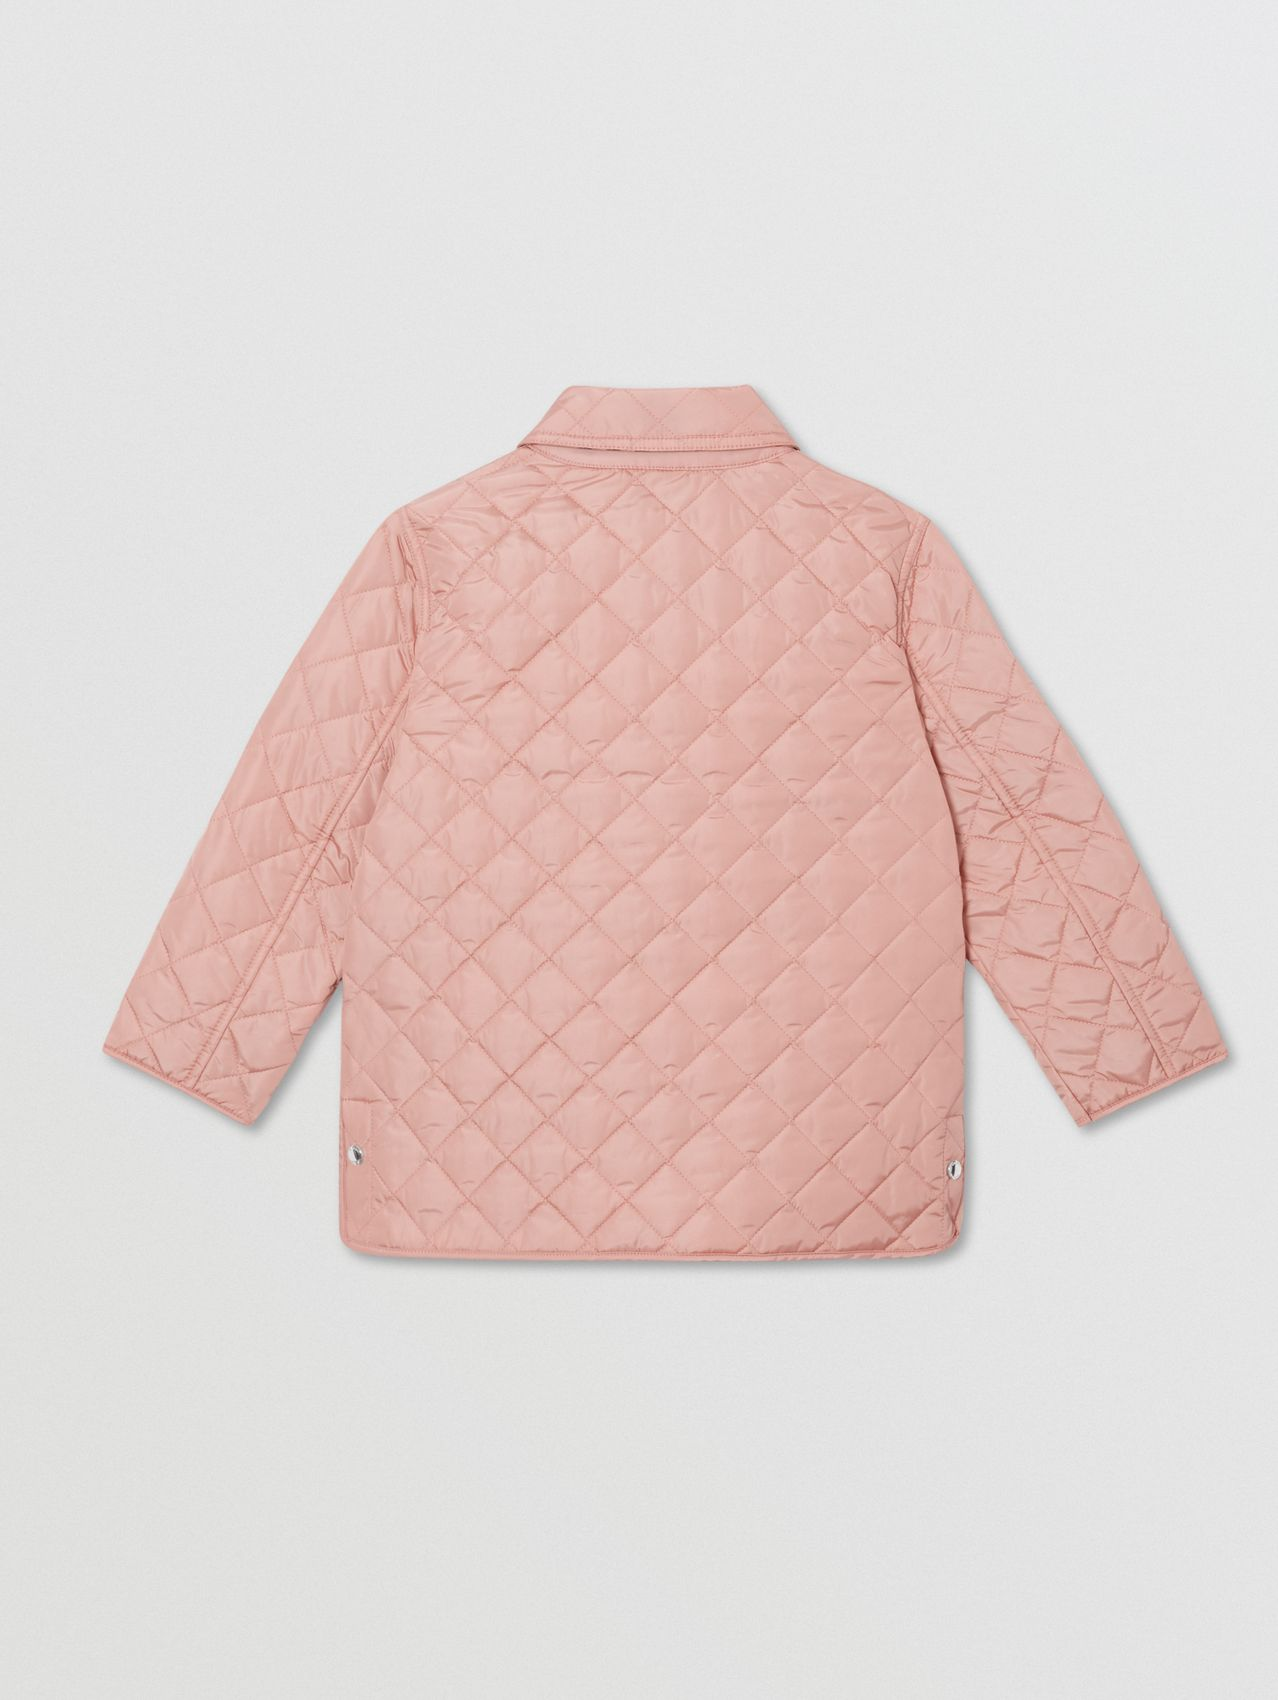 Lightweight Diamond Quilted Jacket in Dusty Pink